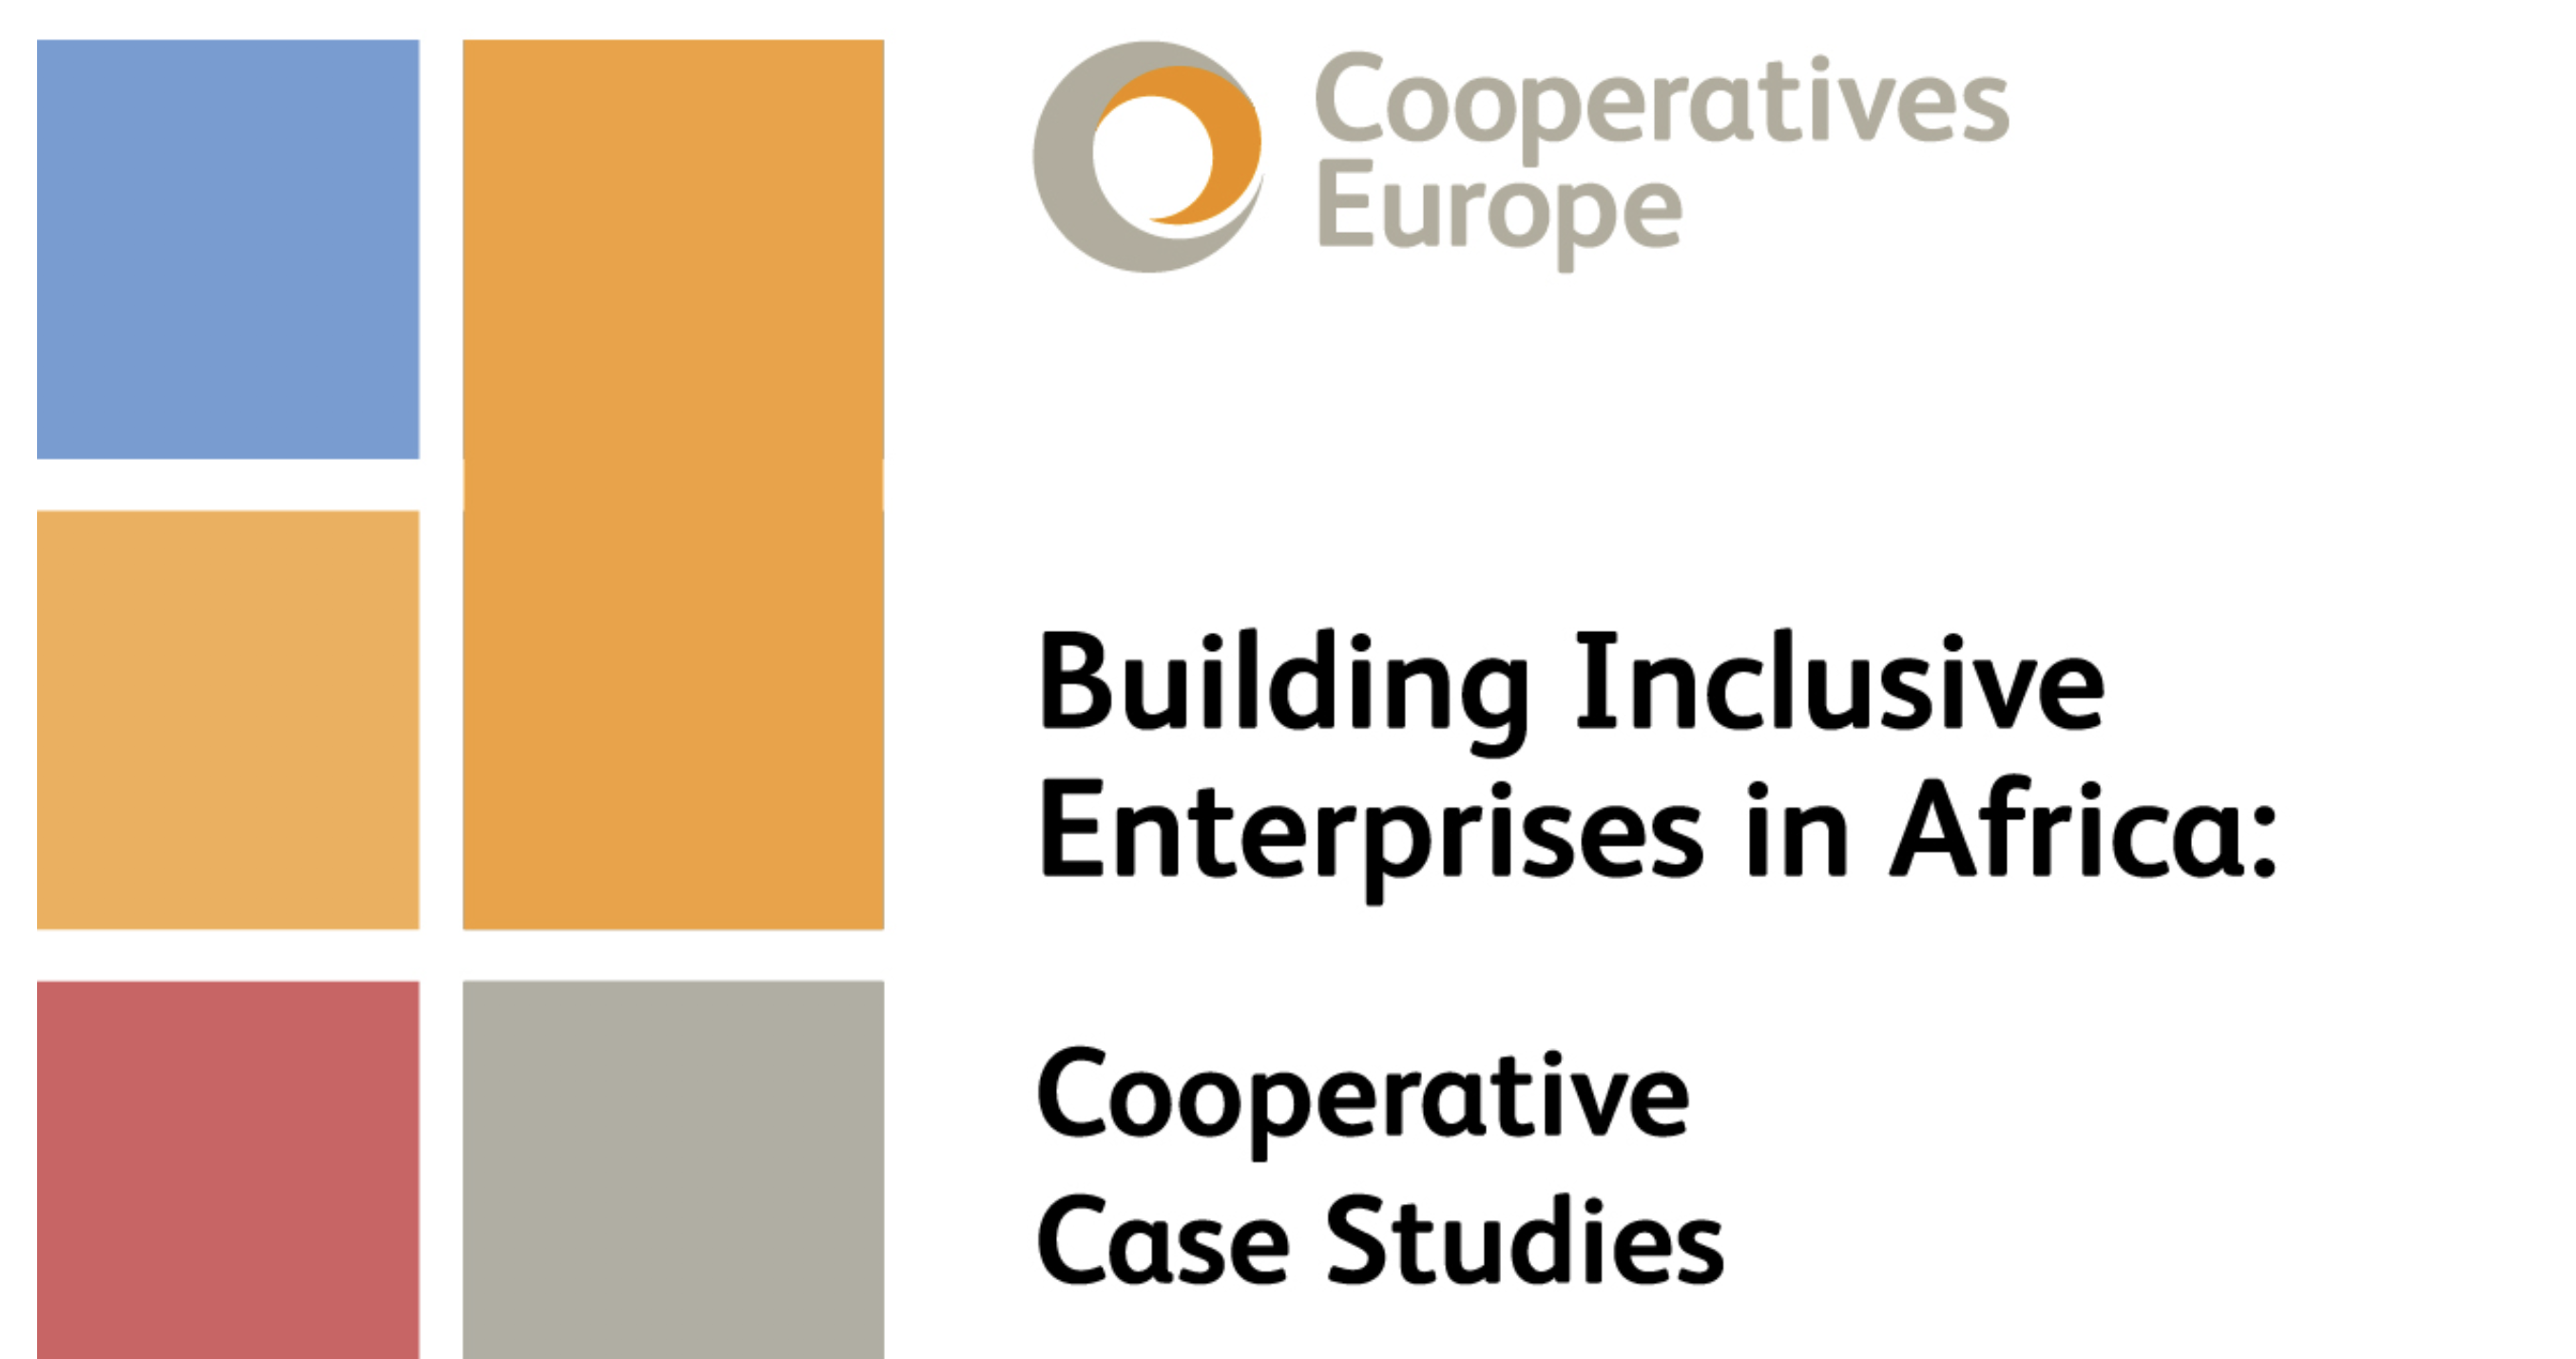 buiding inclusive enterprises in africa